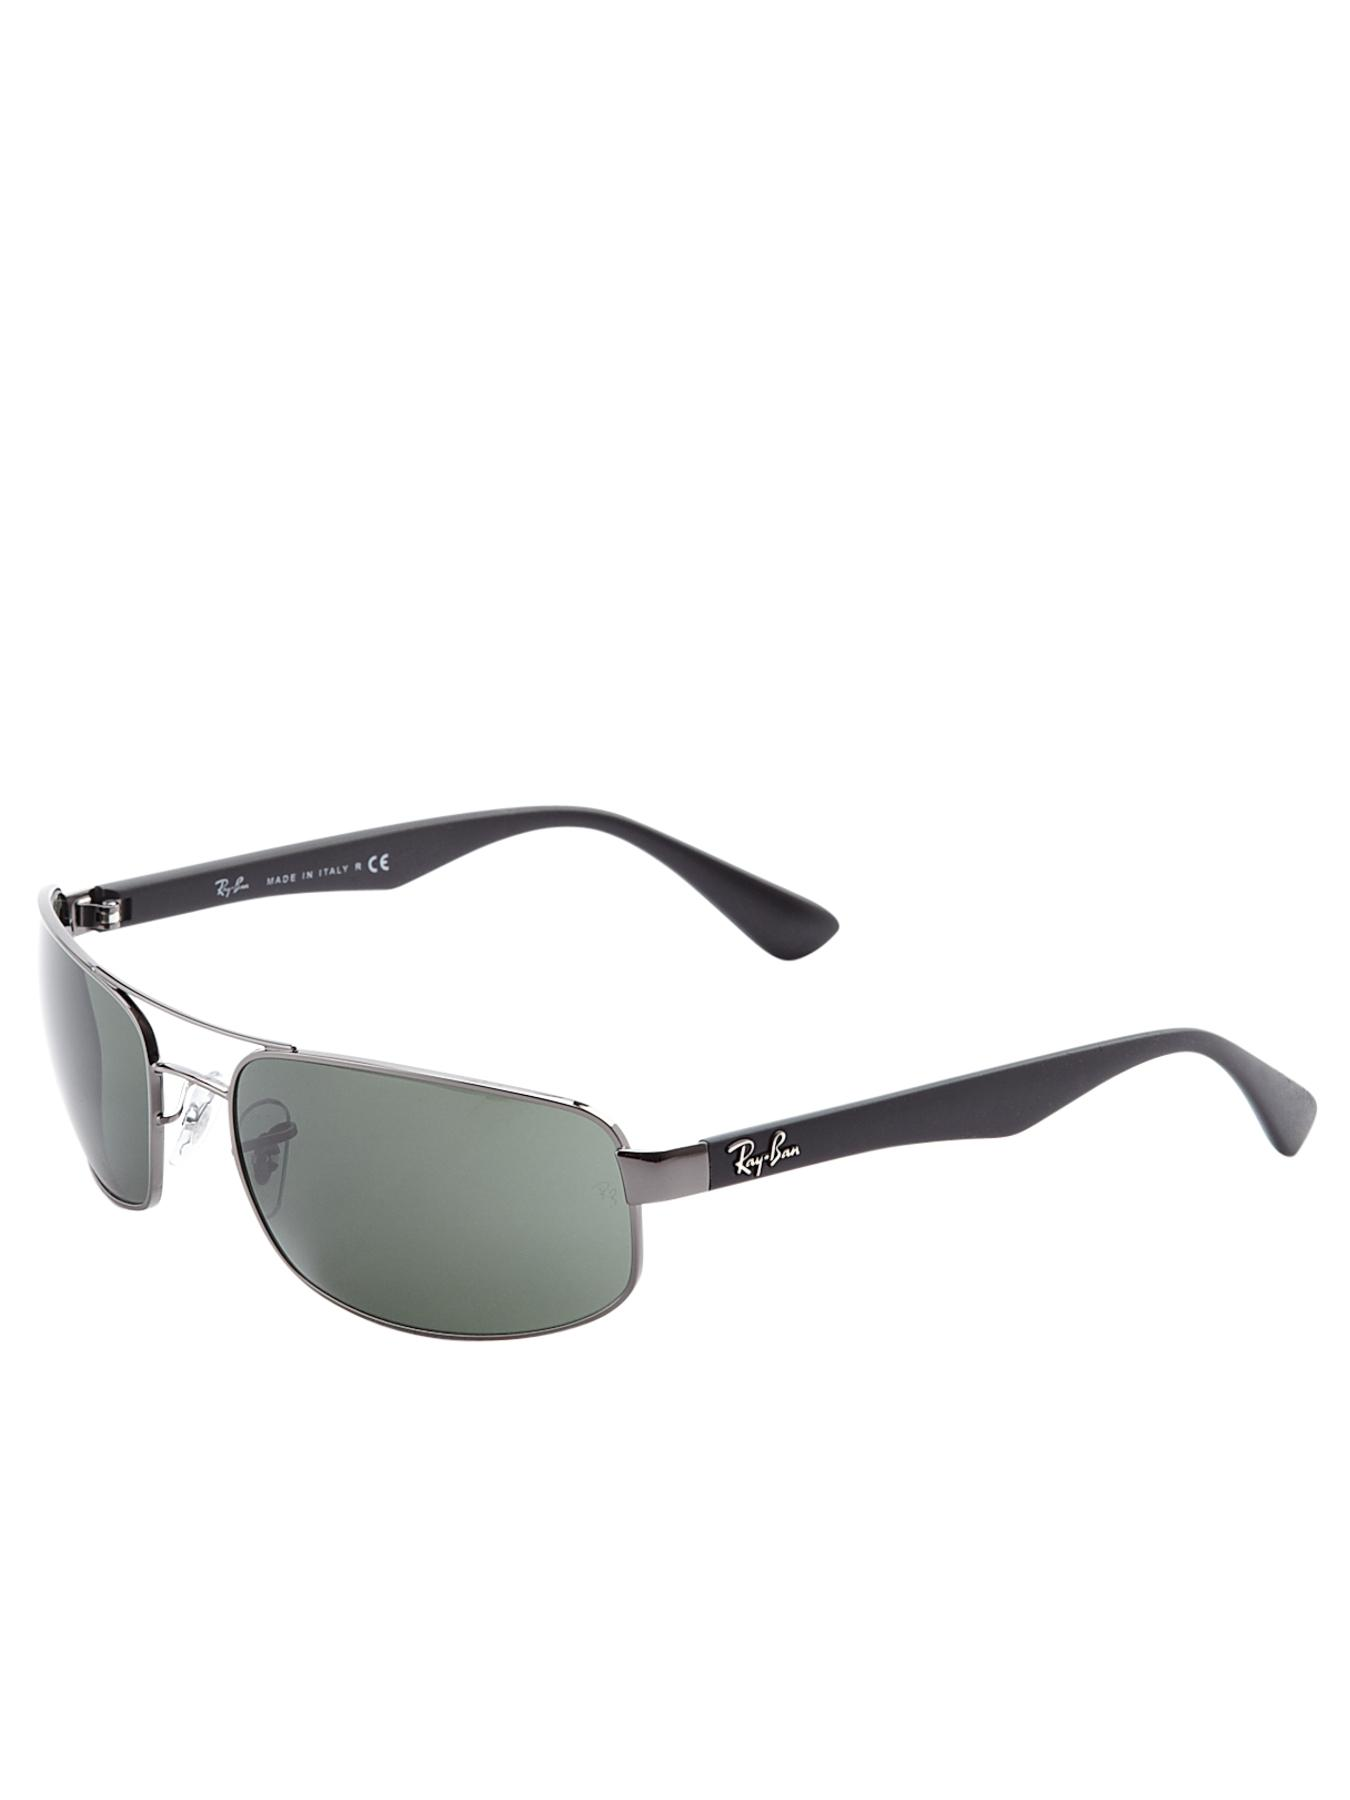 black ray ban sunglasses uk  ray ban sunglasses